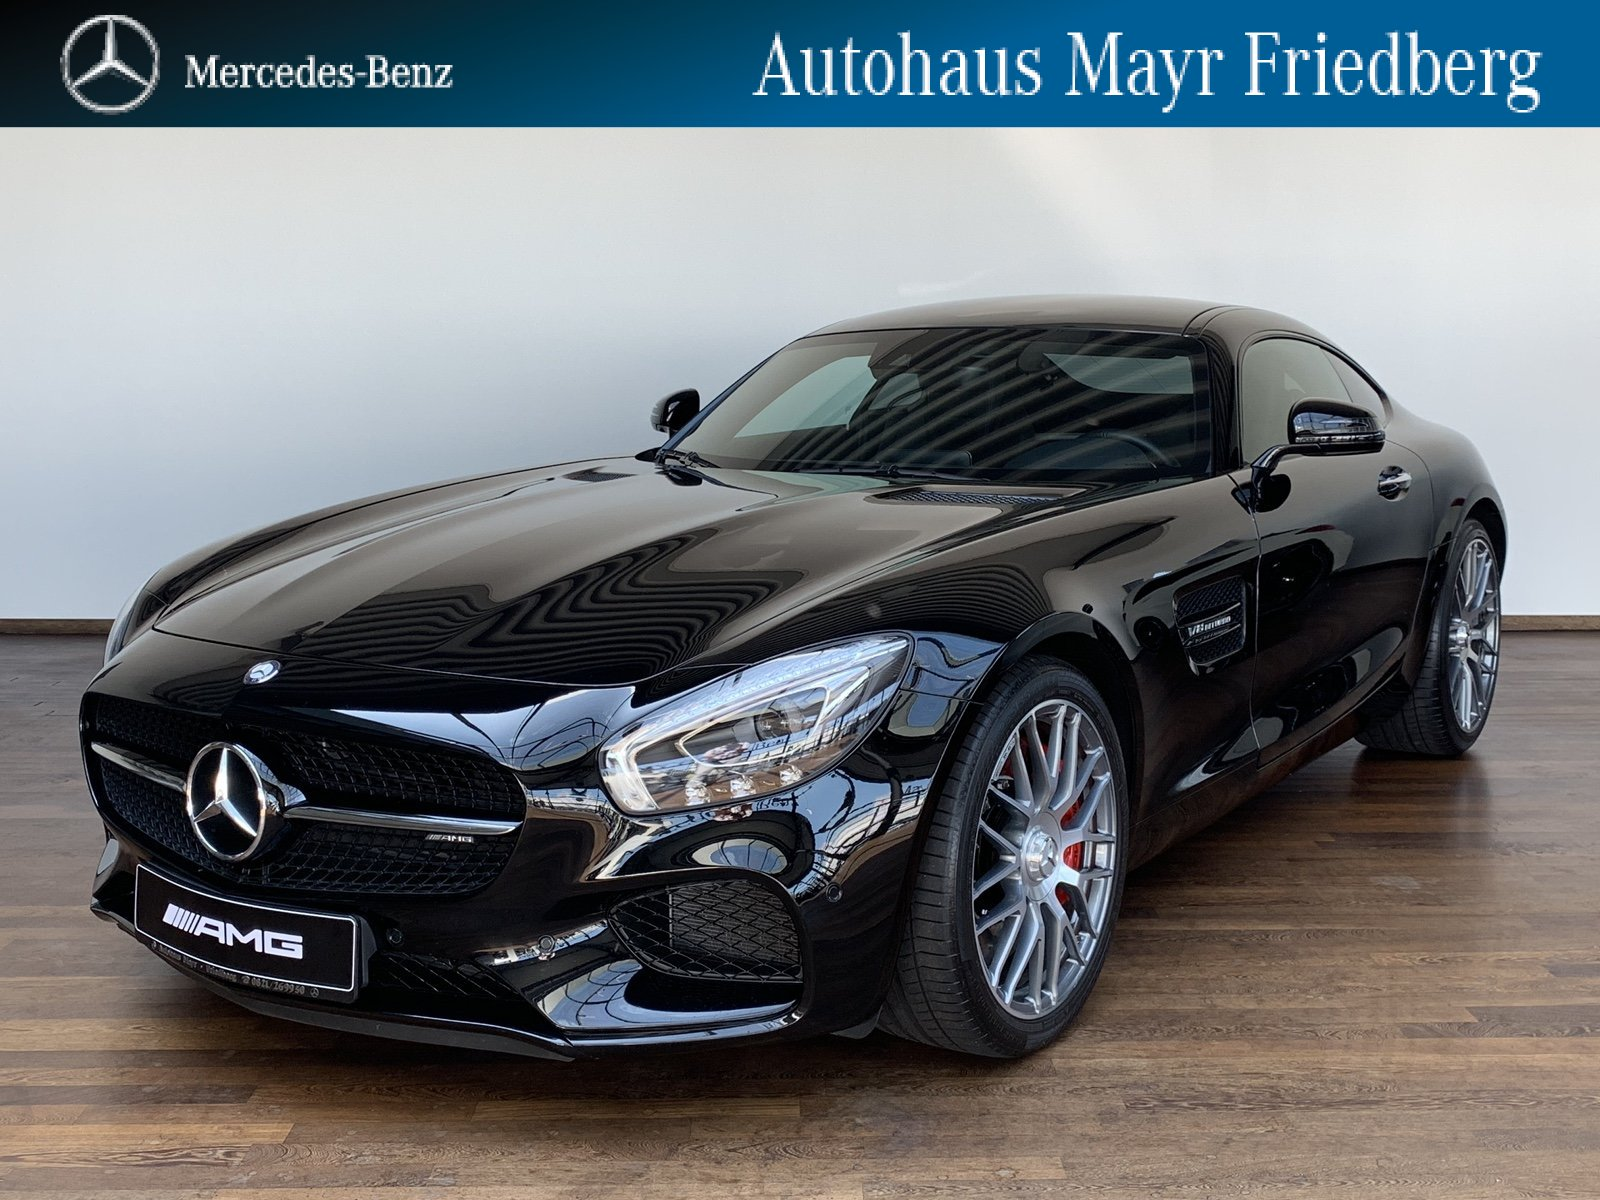 Mercedes-Benz Mercedes-AMG GT S NIGHT+PANO+PERFORMANCE+COMAND, Jahr 2016, petrol